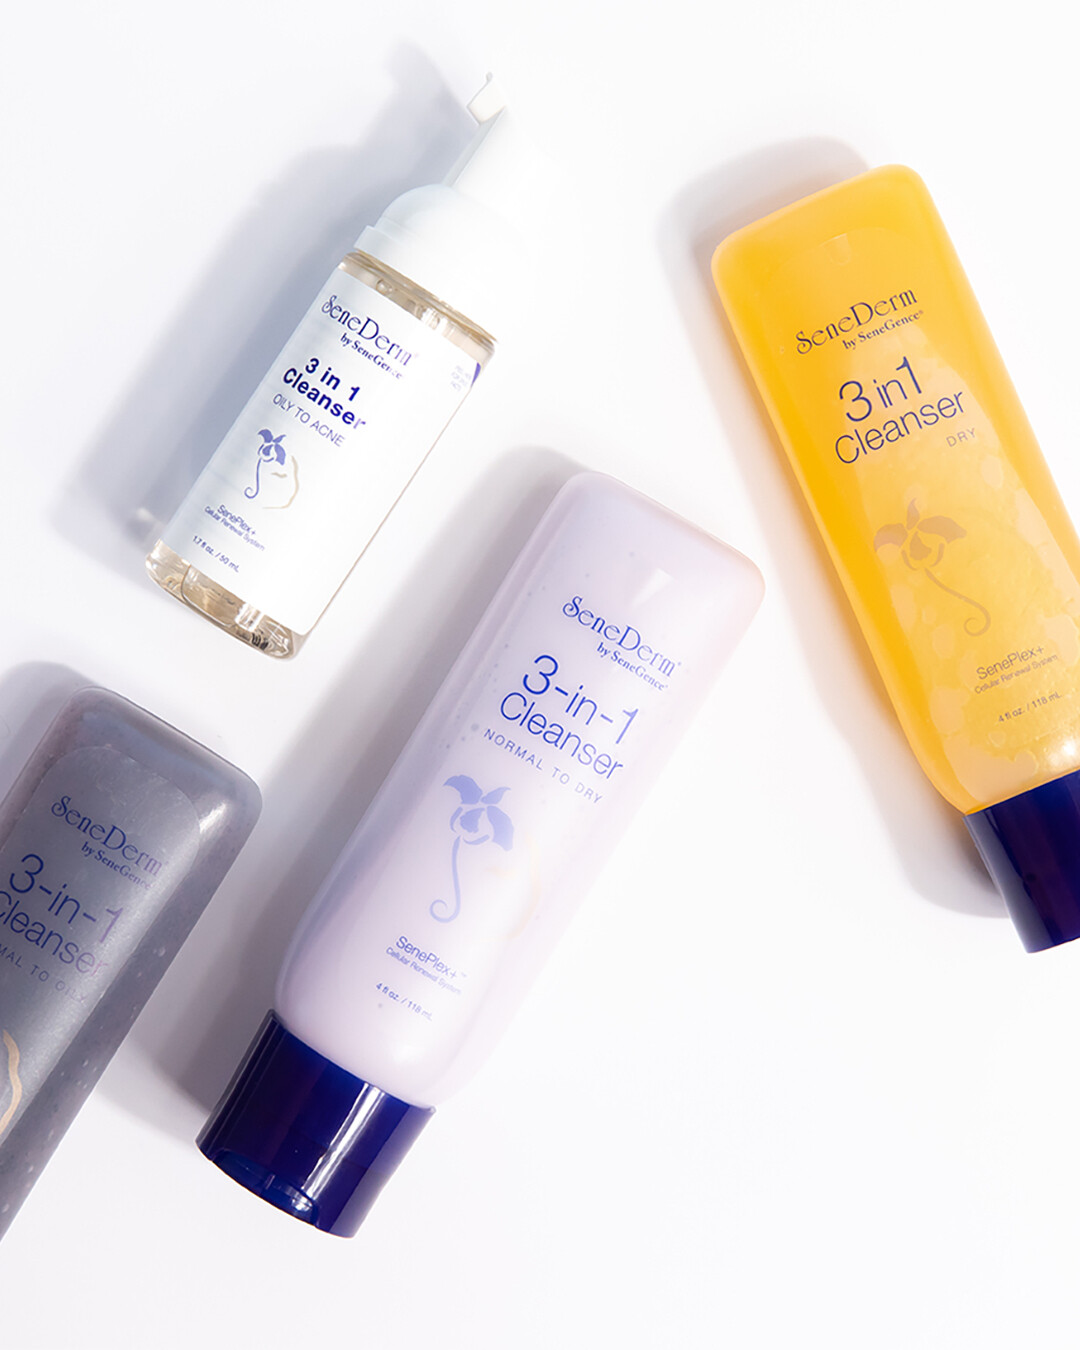 SeneDerm® 3-in-1 Cleansers